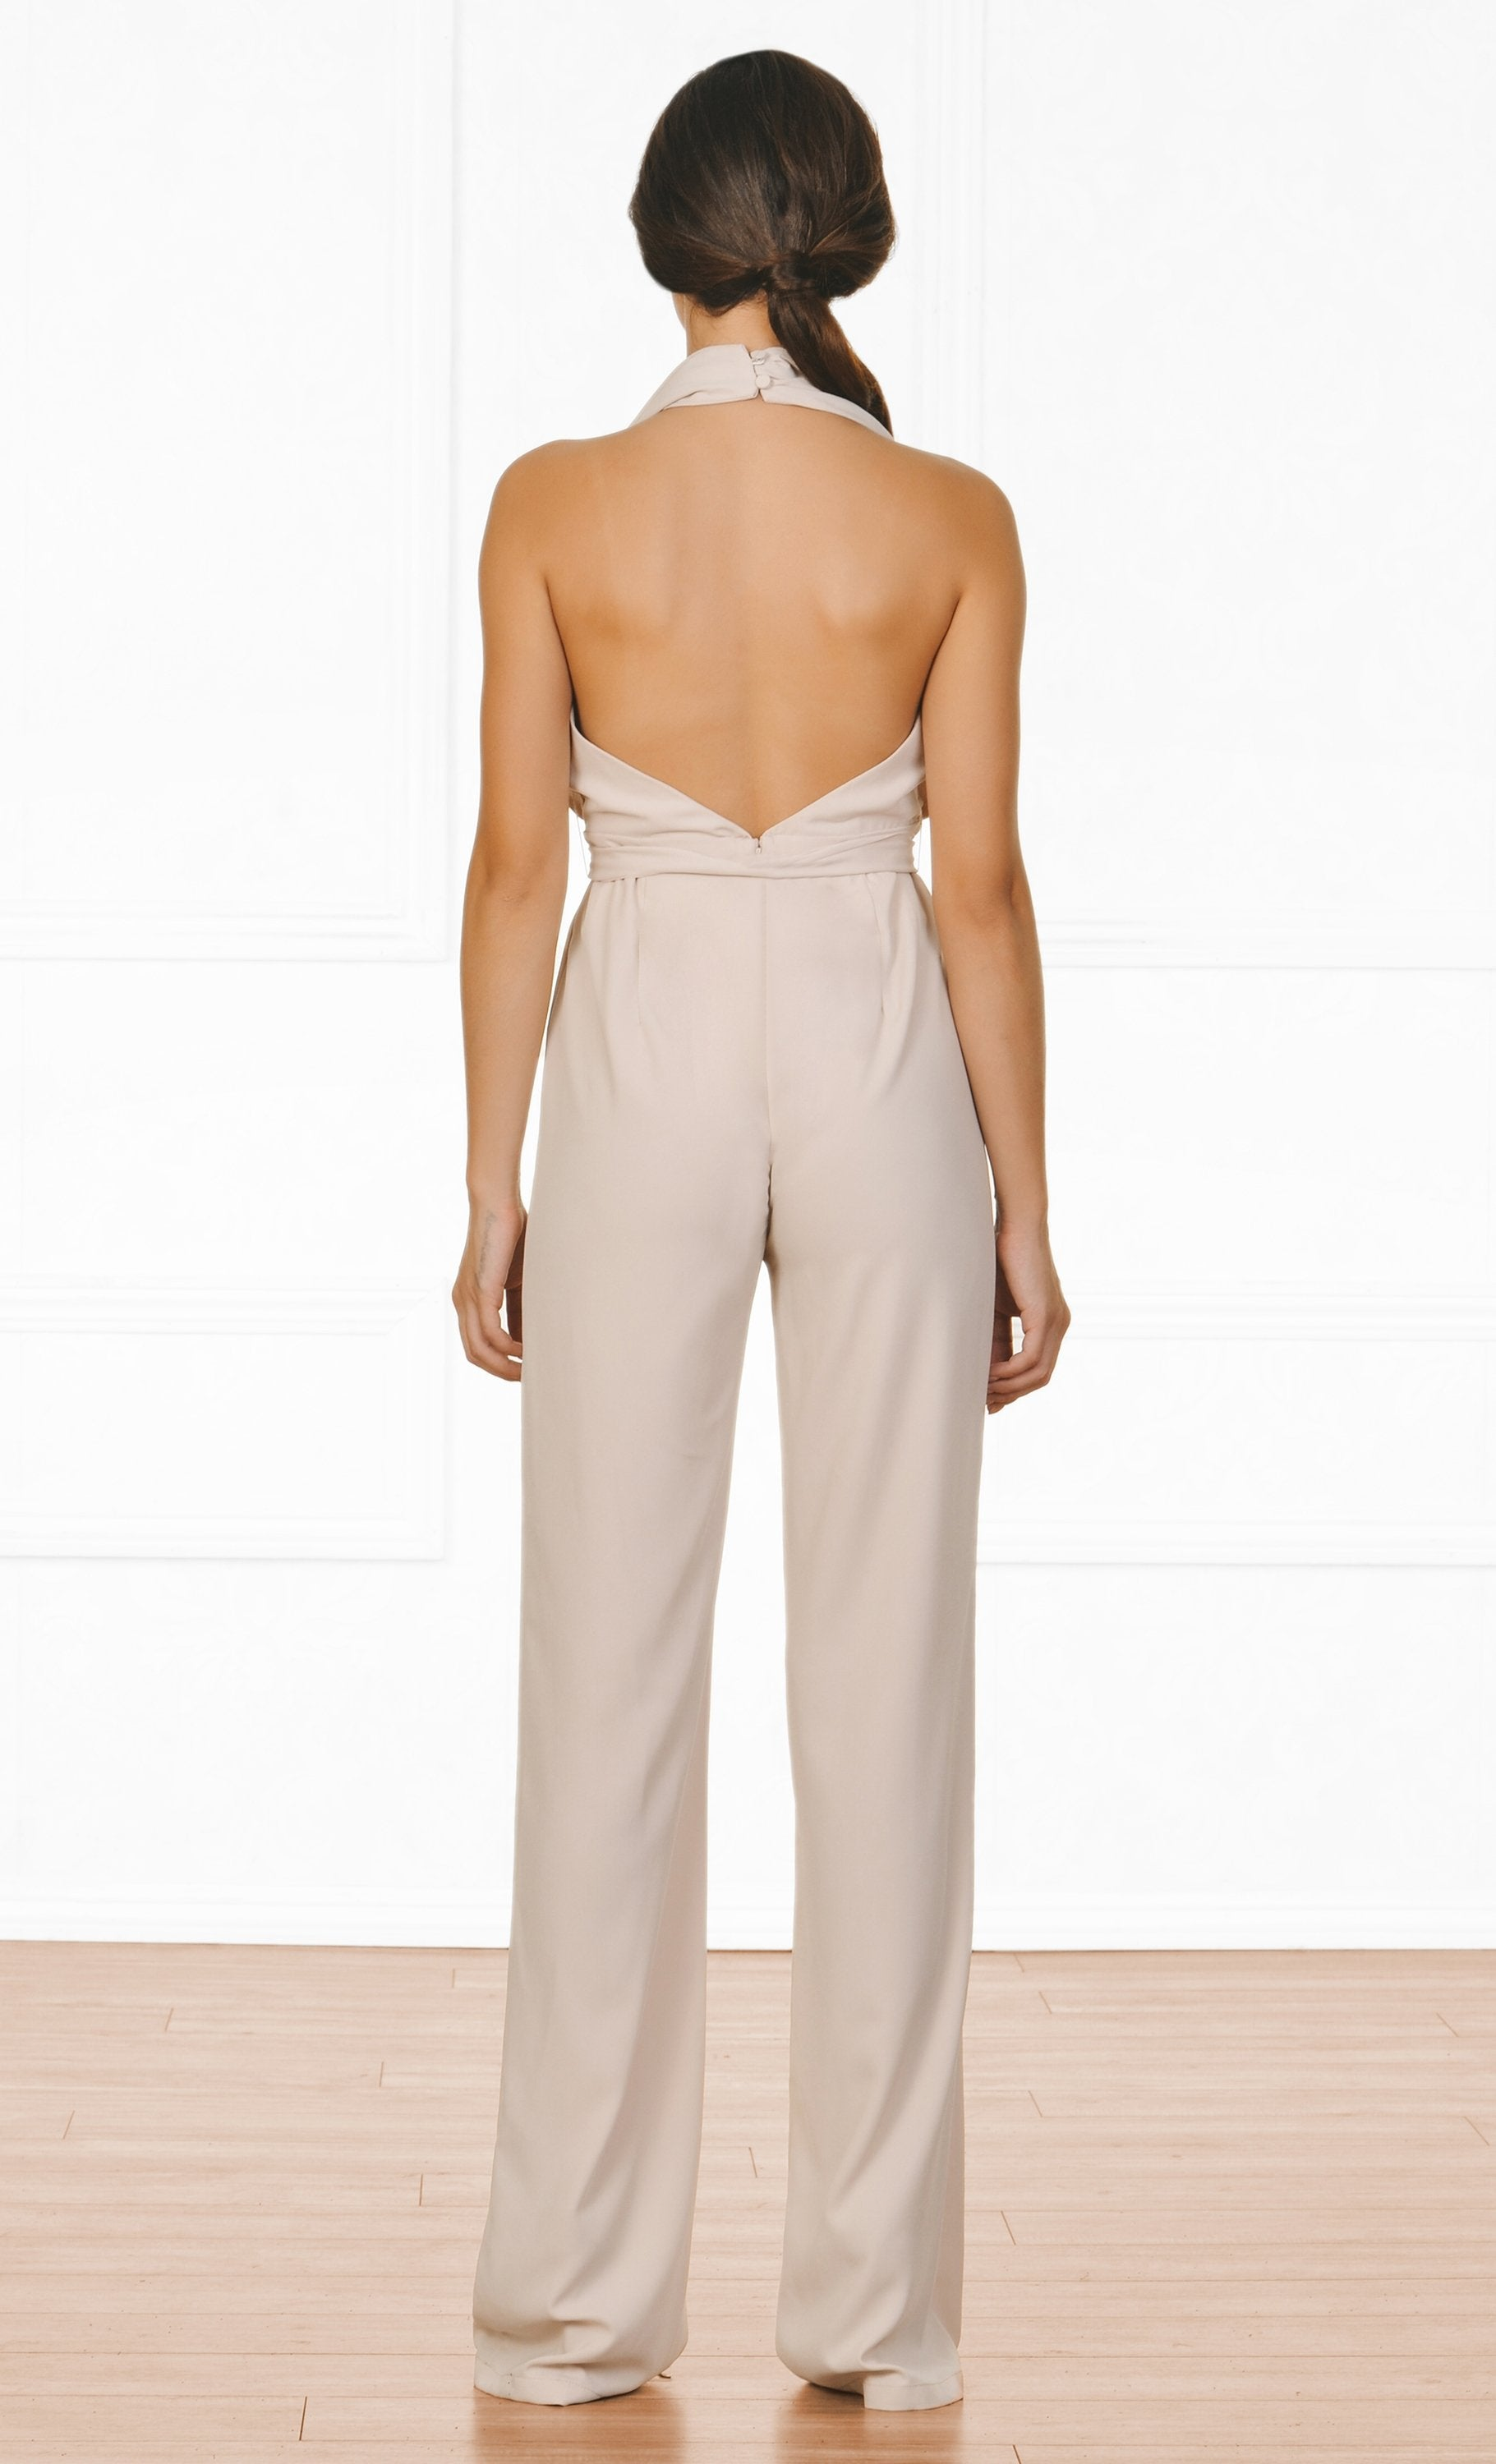 Indie XO All Natural Beige Sleeveless Plunge V Neck Halter Tie Belt Backless Jumpsuit